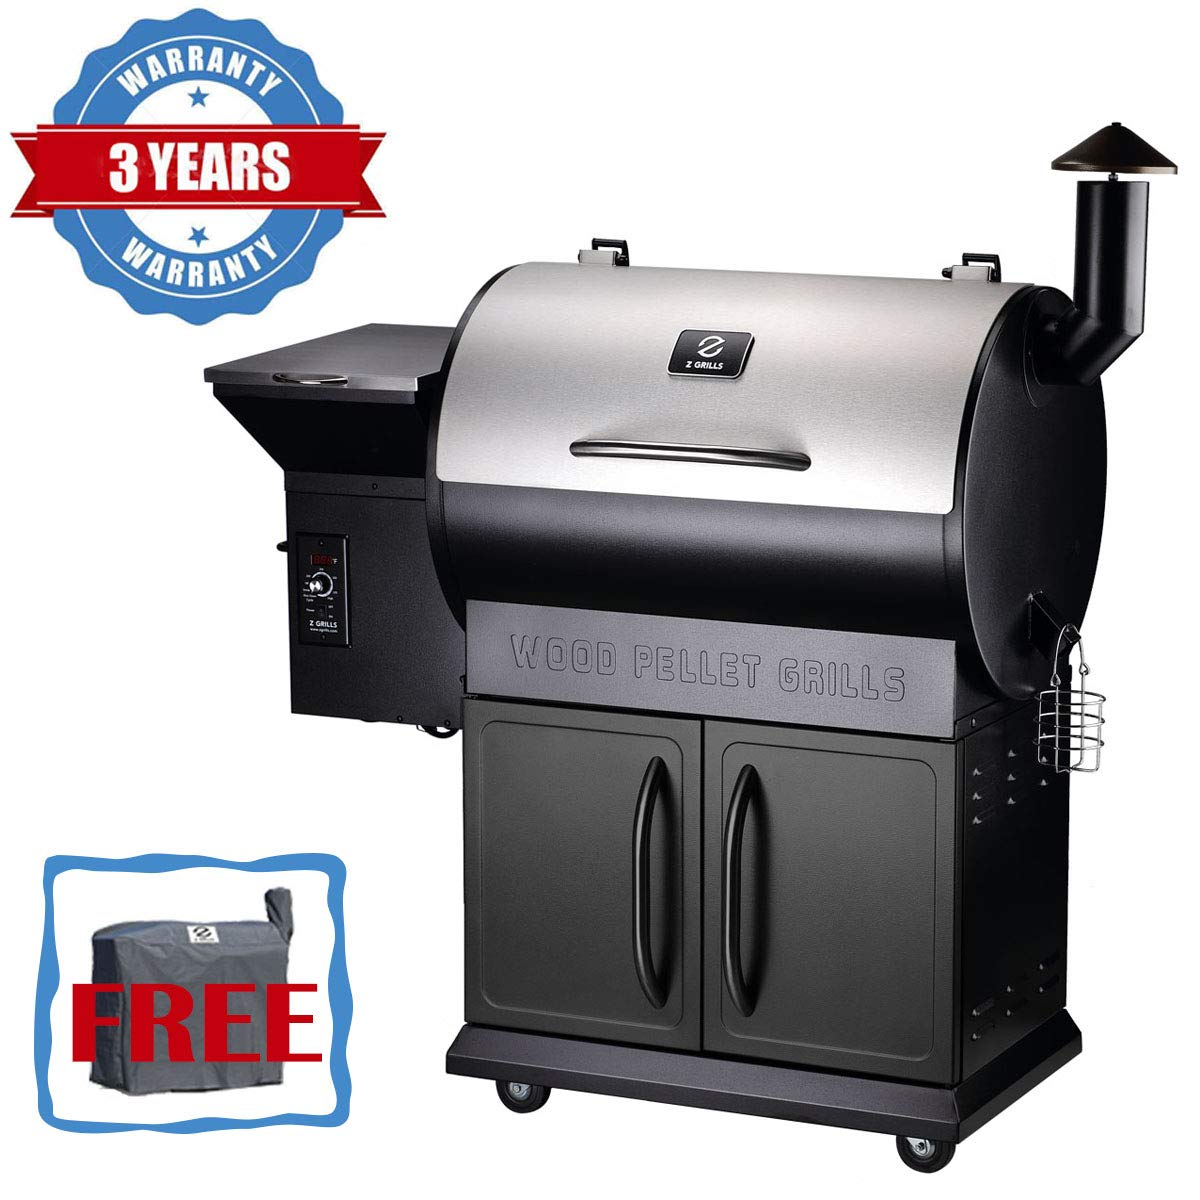 Z GRILLS Wood Pellet Grill 8-in-1 BBQ Smoker with Newest Updated Digital Control(Waterproof Cover Included) by Z GRILLS